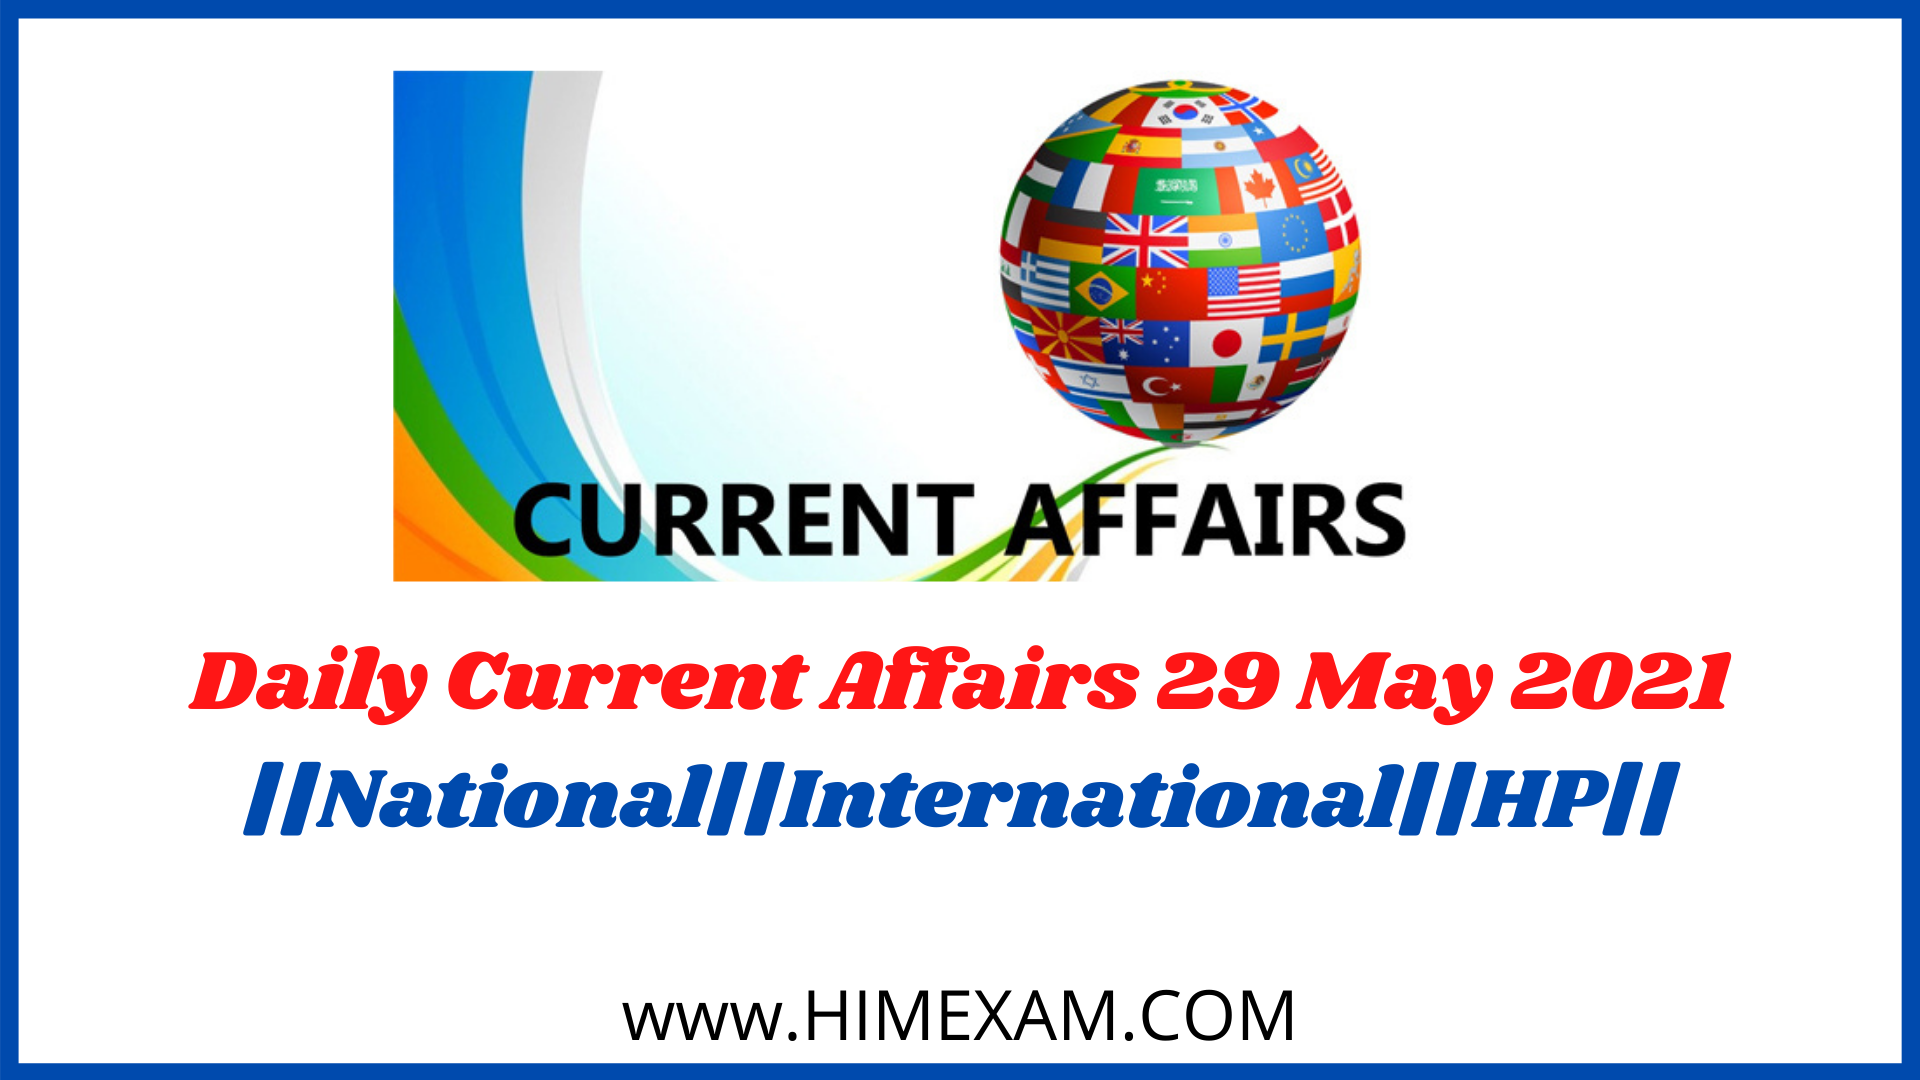 Daily Current Affairs 29 May 2021